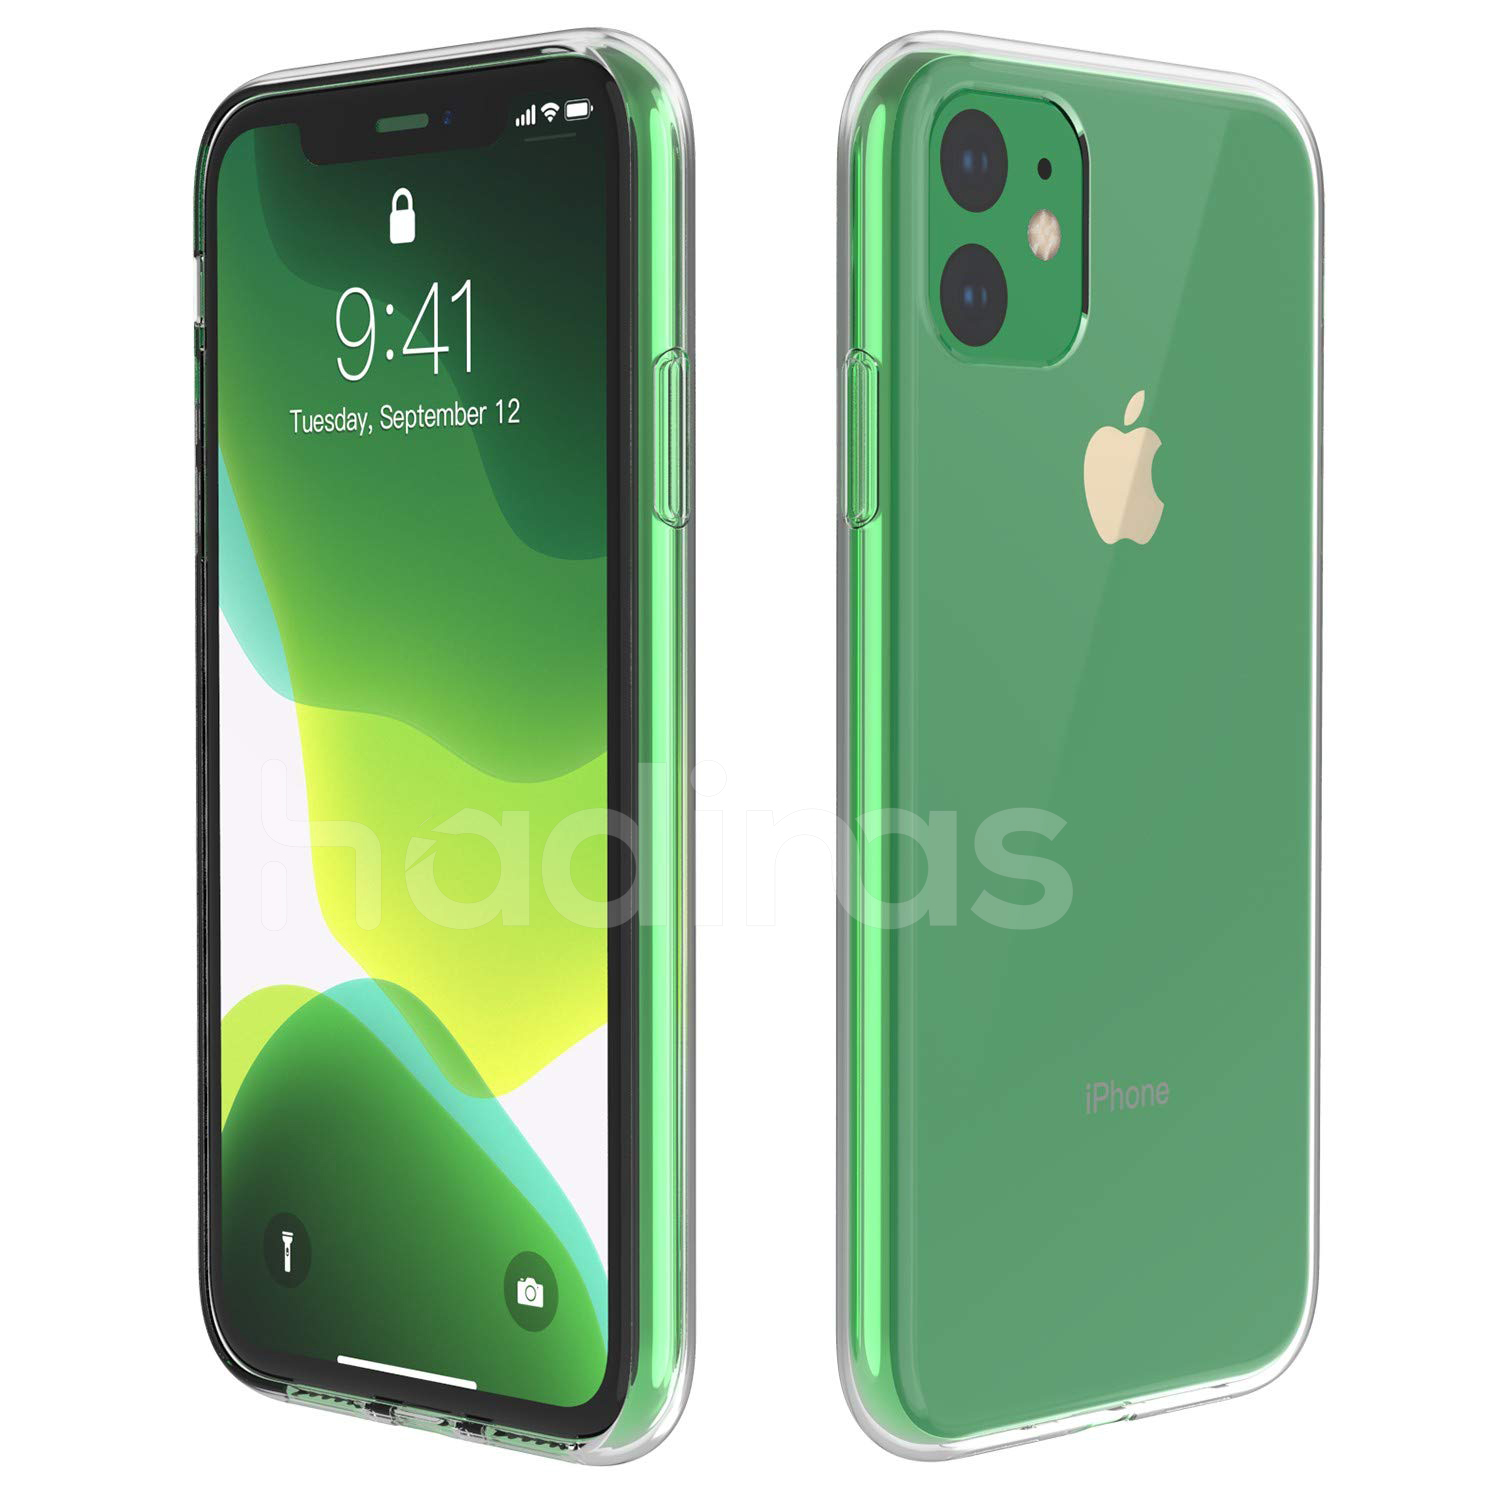 Hadinas Silicone Case for iPhone 11/11 Pro/11 Pro Max 15